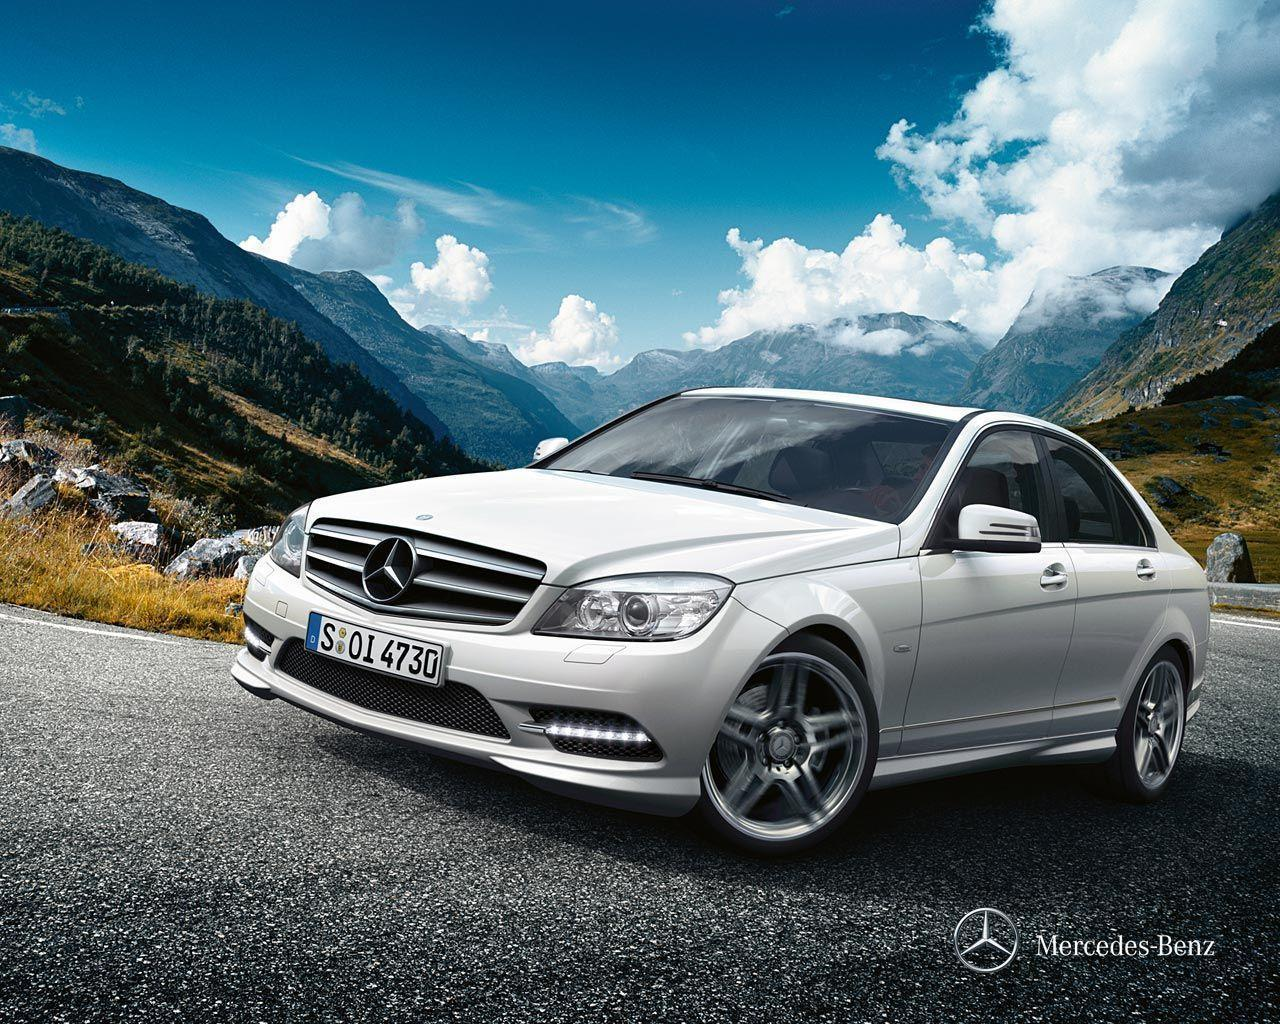 Mercedes Benz, Wallpapers and C class